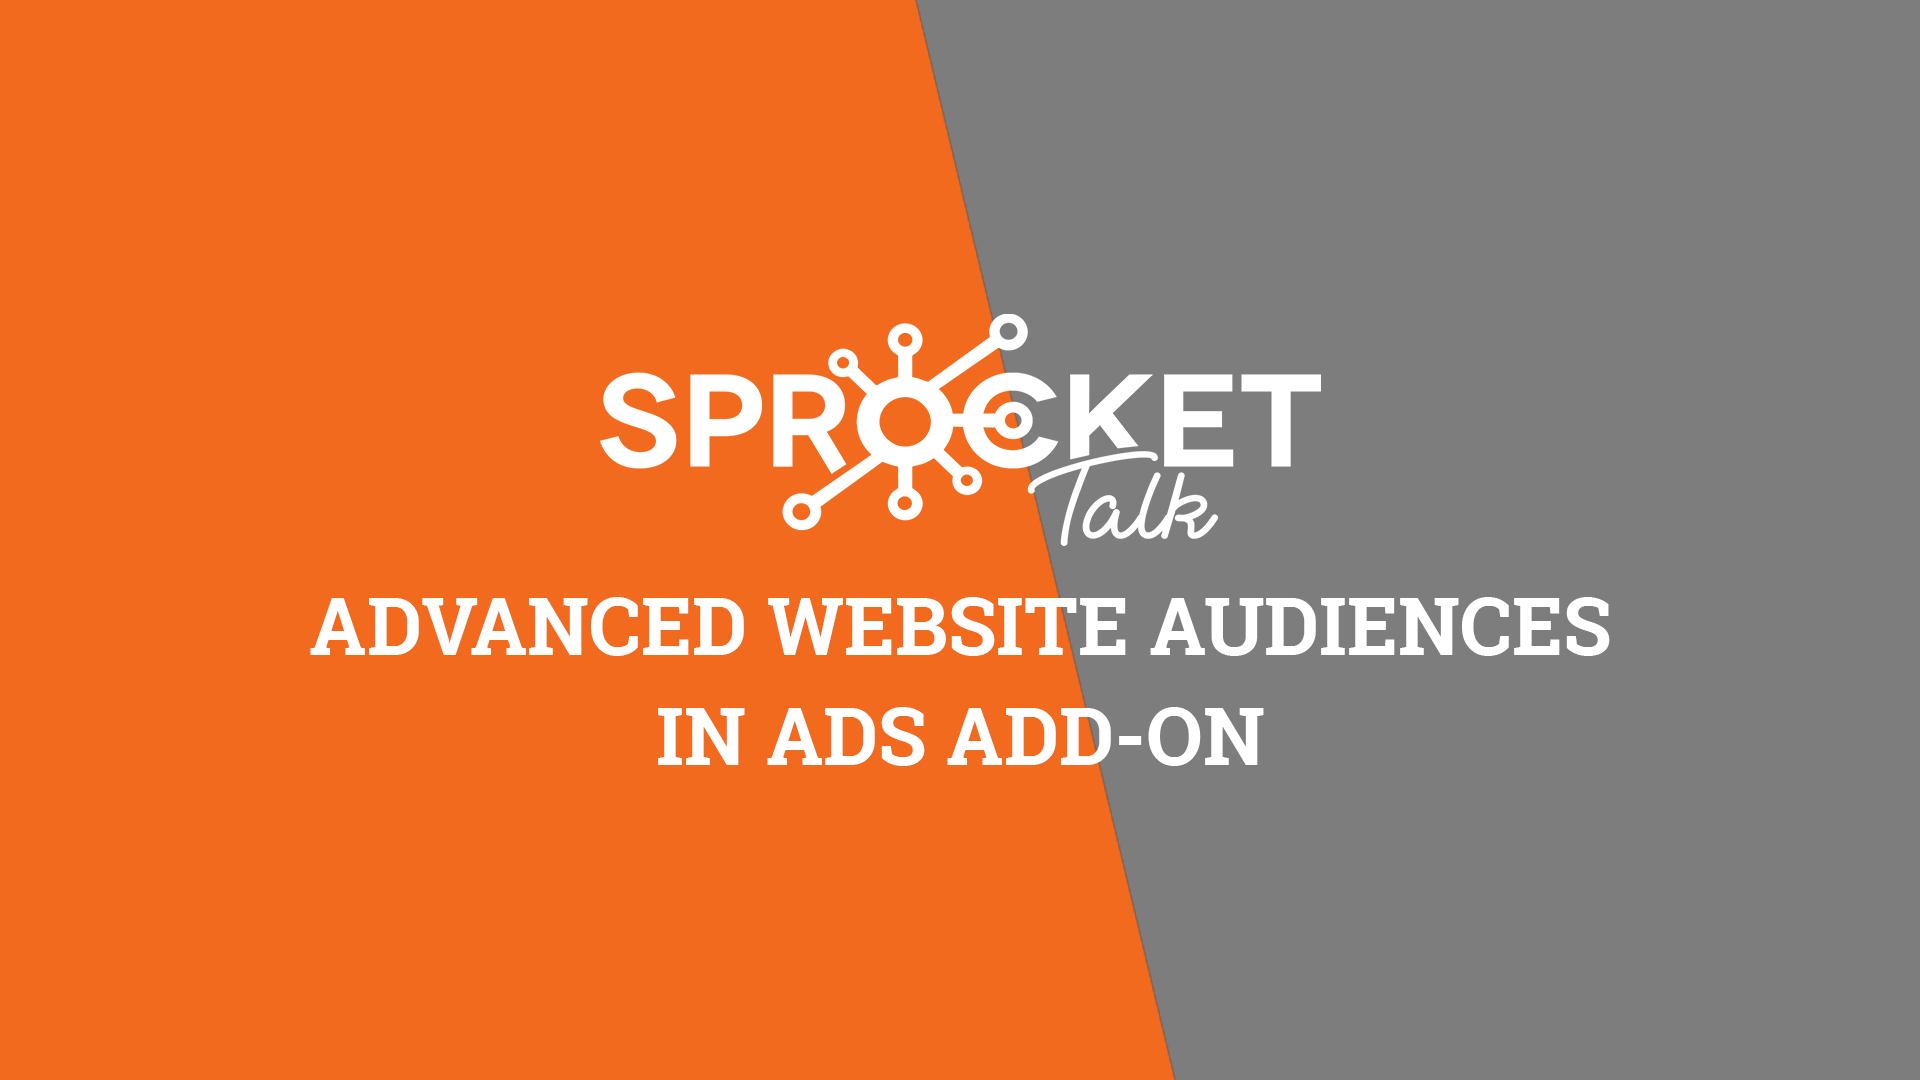 Advanced Website Audiences in Ads Add-on